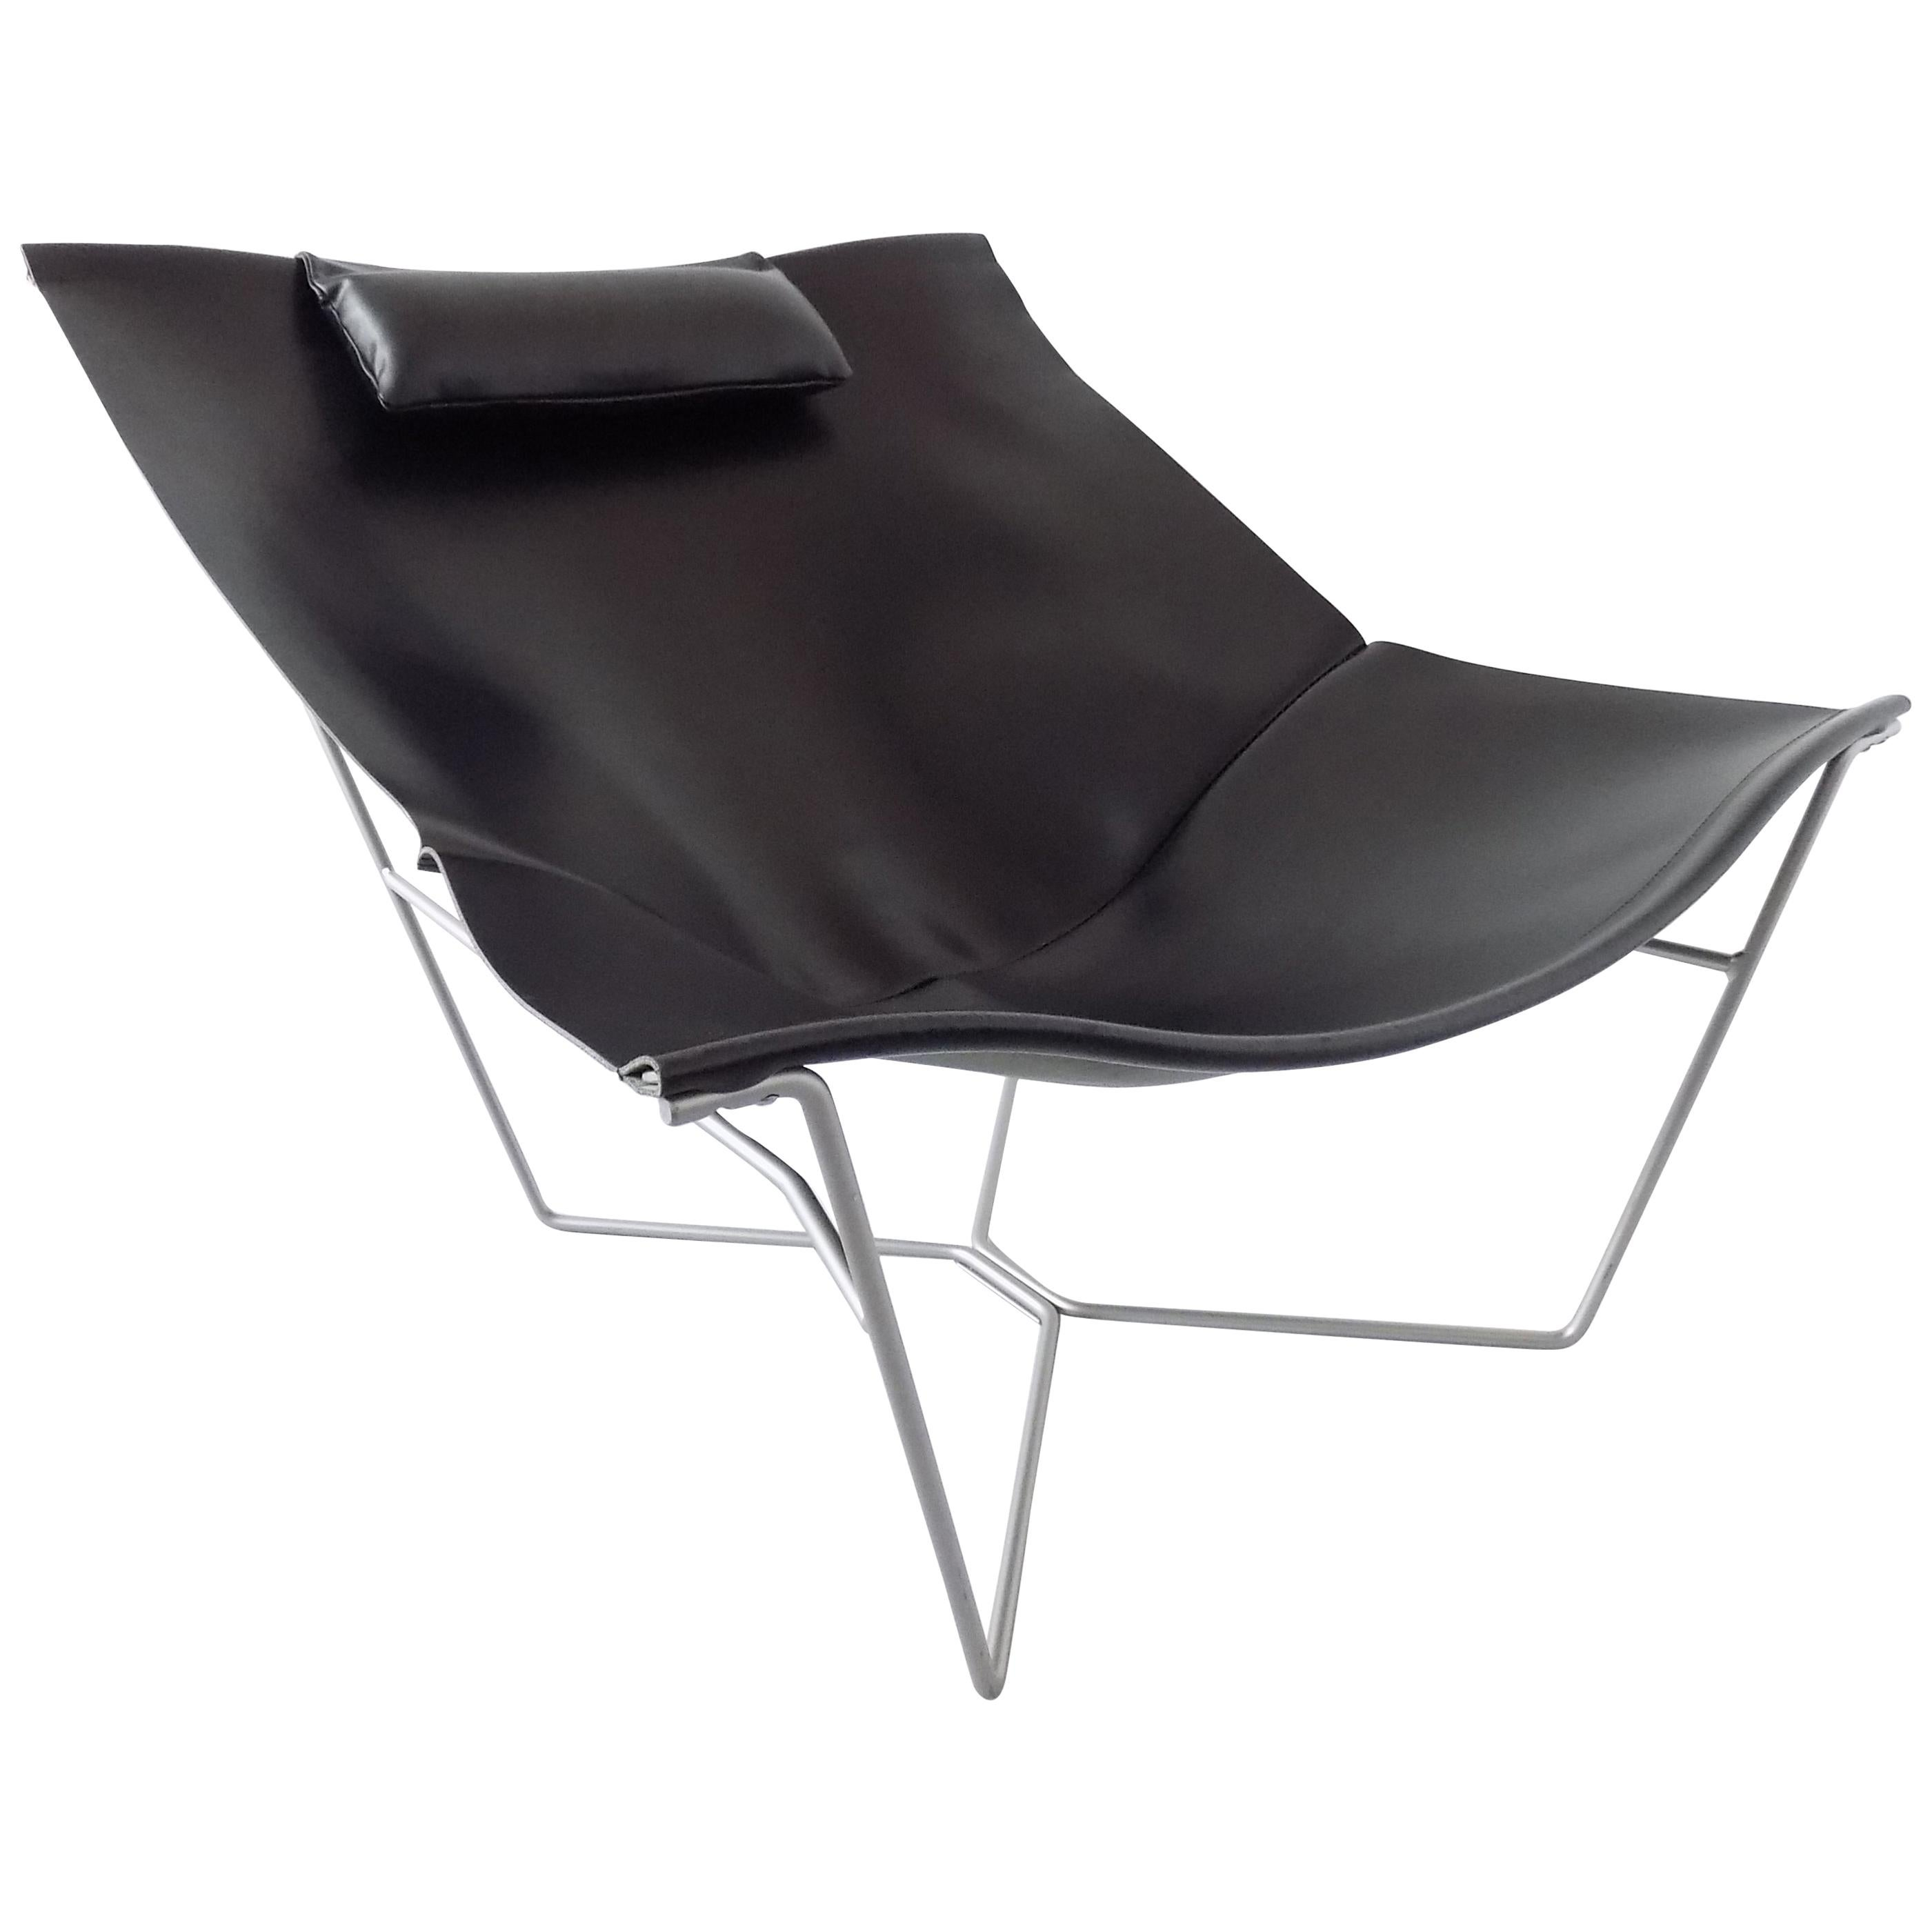 Astonishing Leather Sling Chairs 337 For Sale On 1Stdibs Cjindustries Chair Design For Home Cjindustriesco